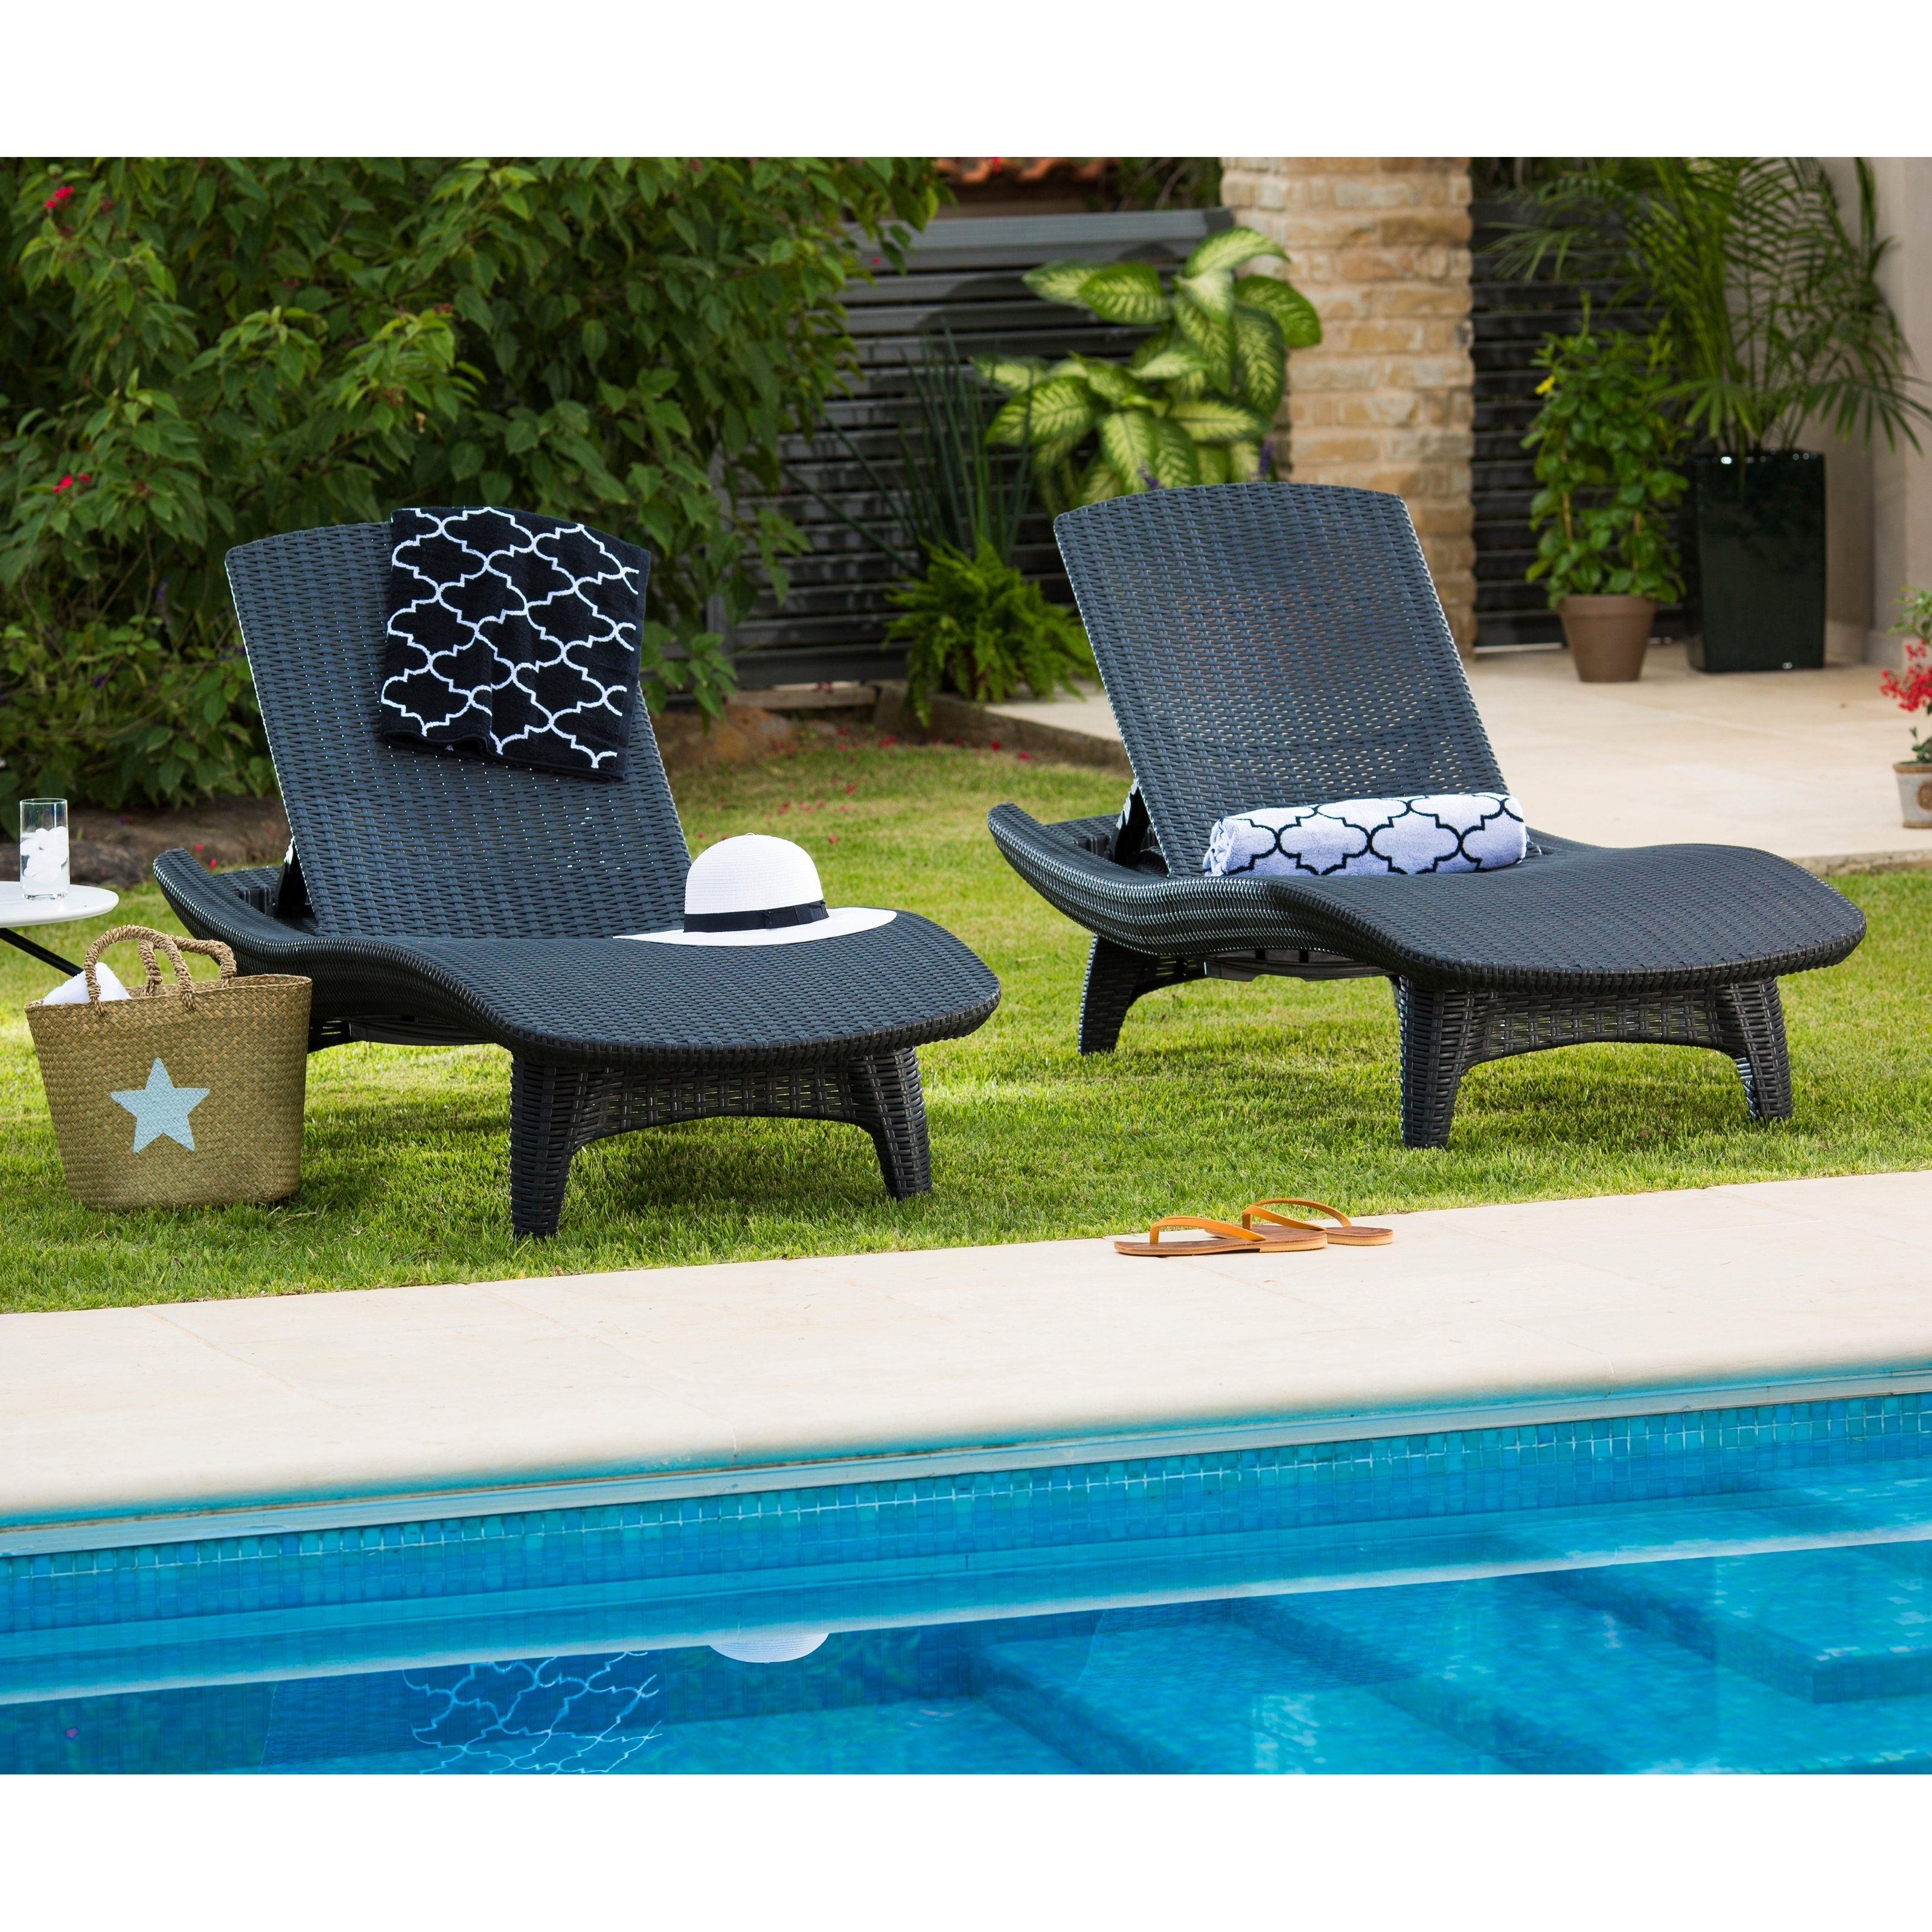 Keter Chaise Lounges with regard to Preferred Keter Outdoor Chaise Lounge - Set Of 2